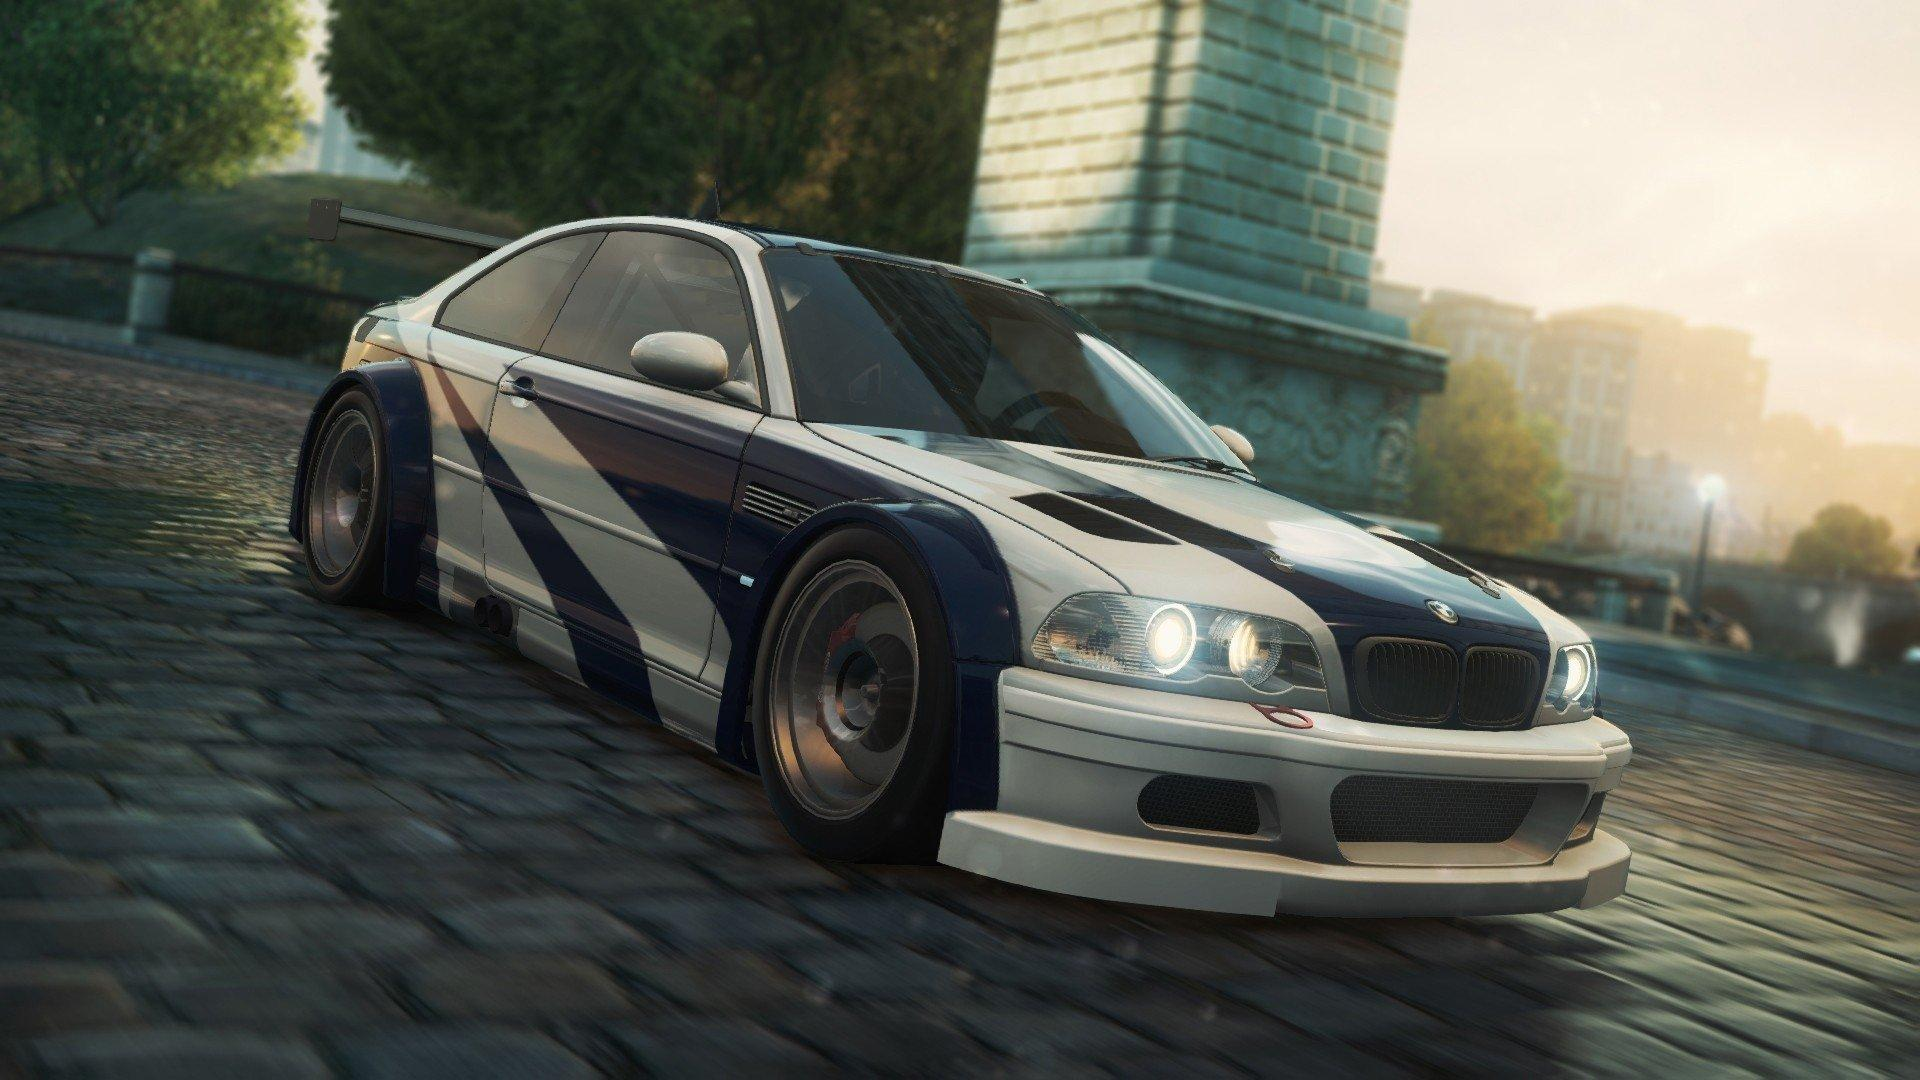 Nfs Most Wanted Wallpapers Hd Wallpaper Cave